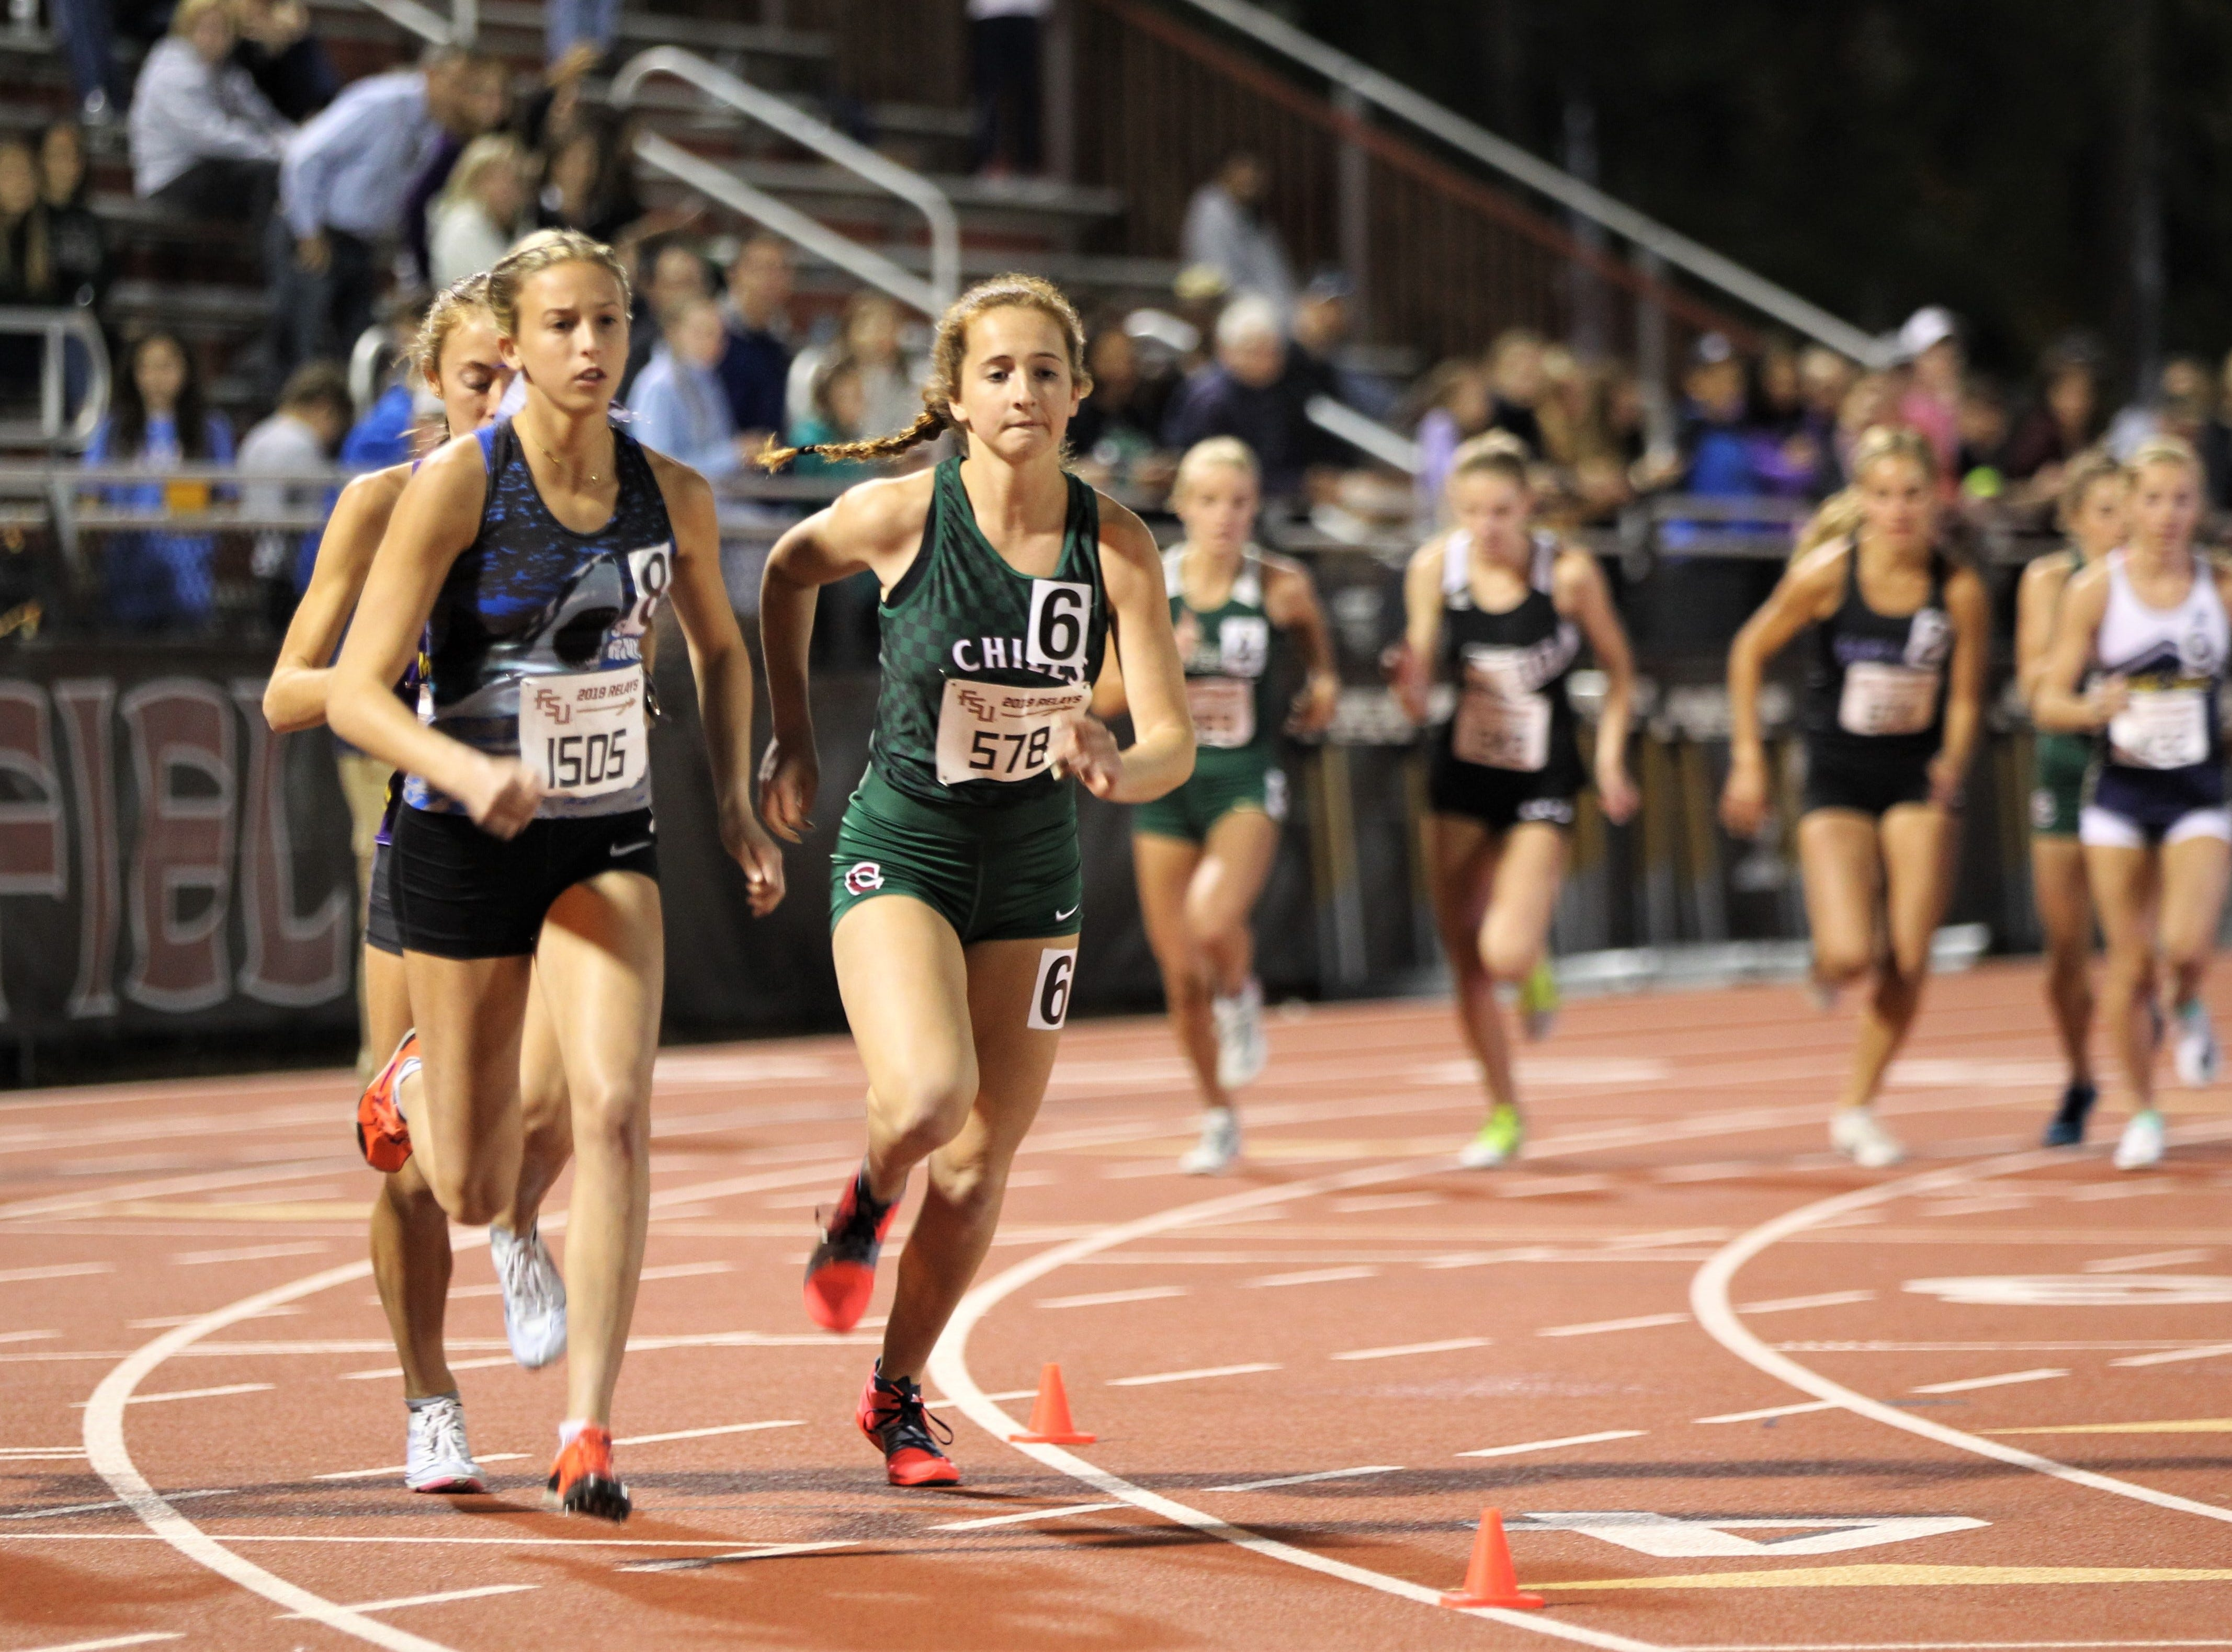 Chiles senior Emily Culley competes in the 3200-meter invitational race during the 40th annual FSU Relays at Mike Long Track on Friday night, March 22, 2019.